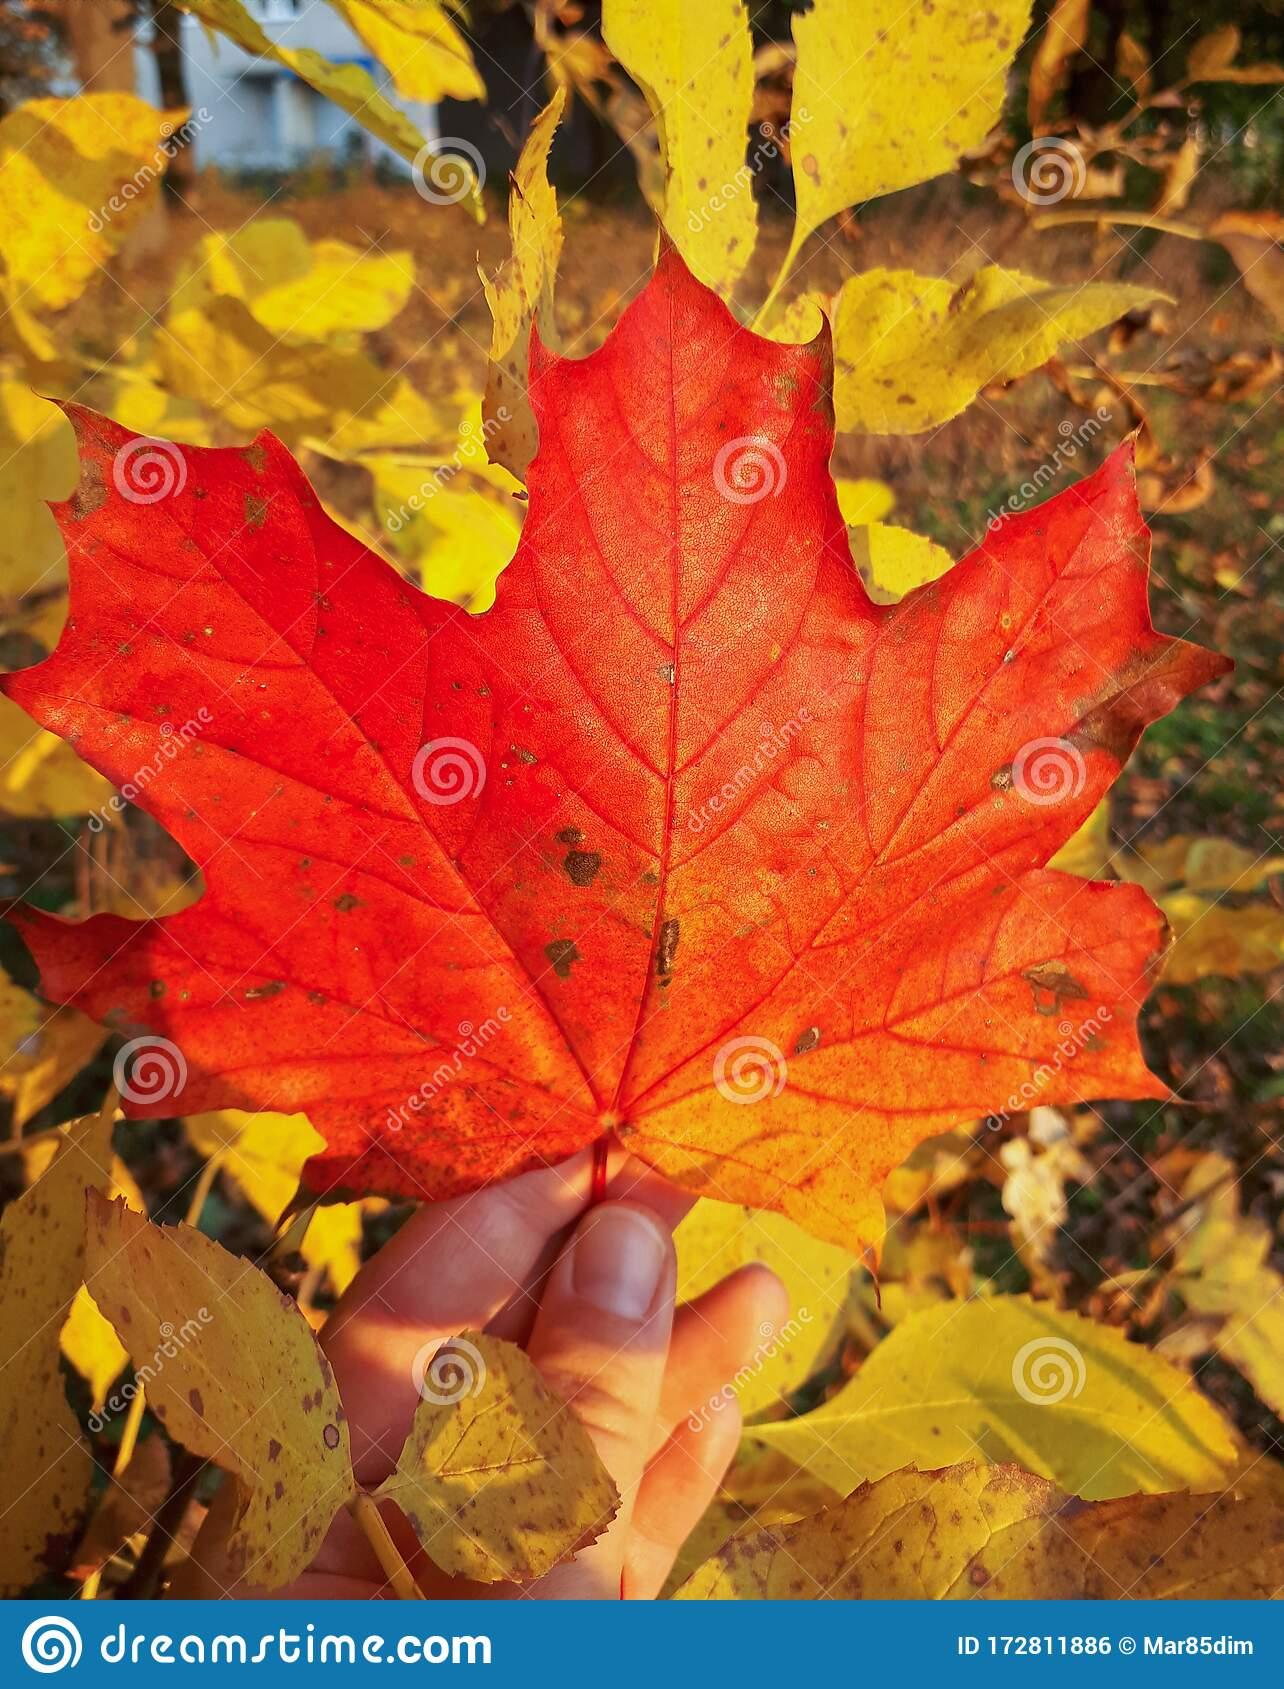 Red Autumn Maple Leaf In Hand Background Of Yellow Leaves